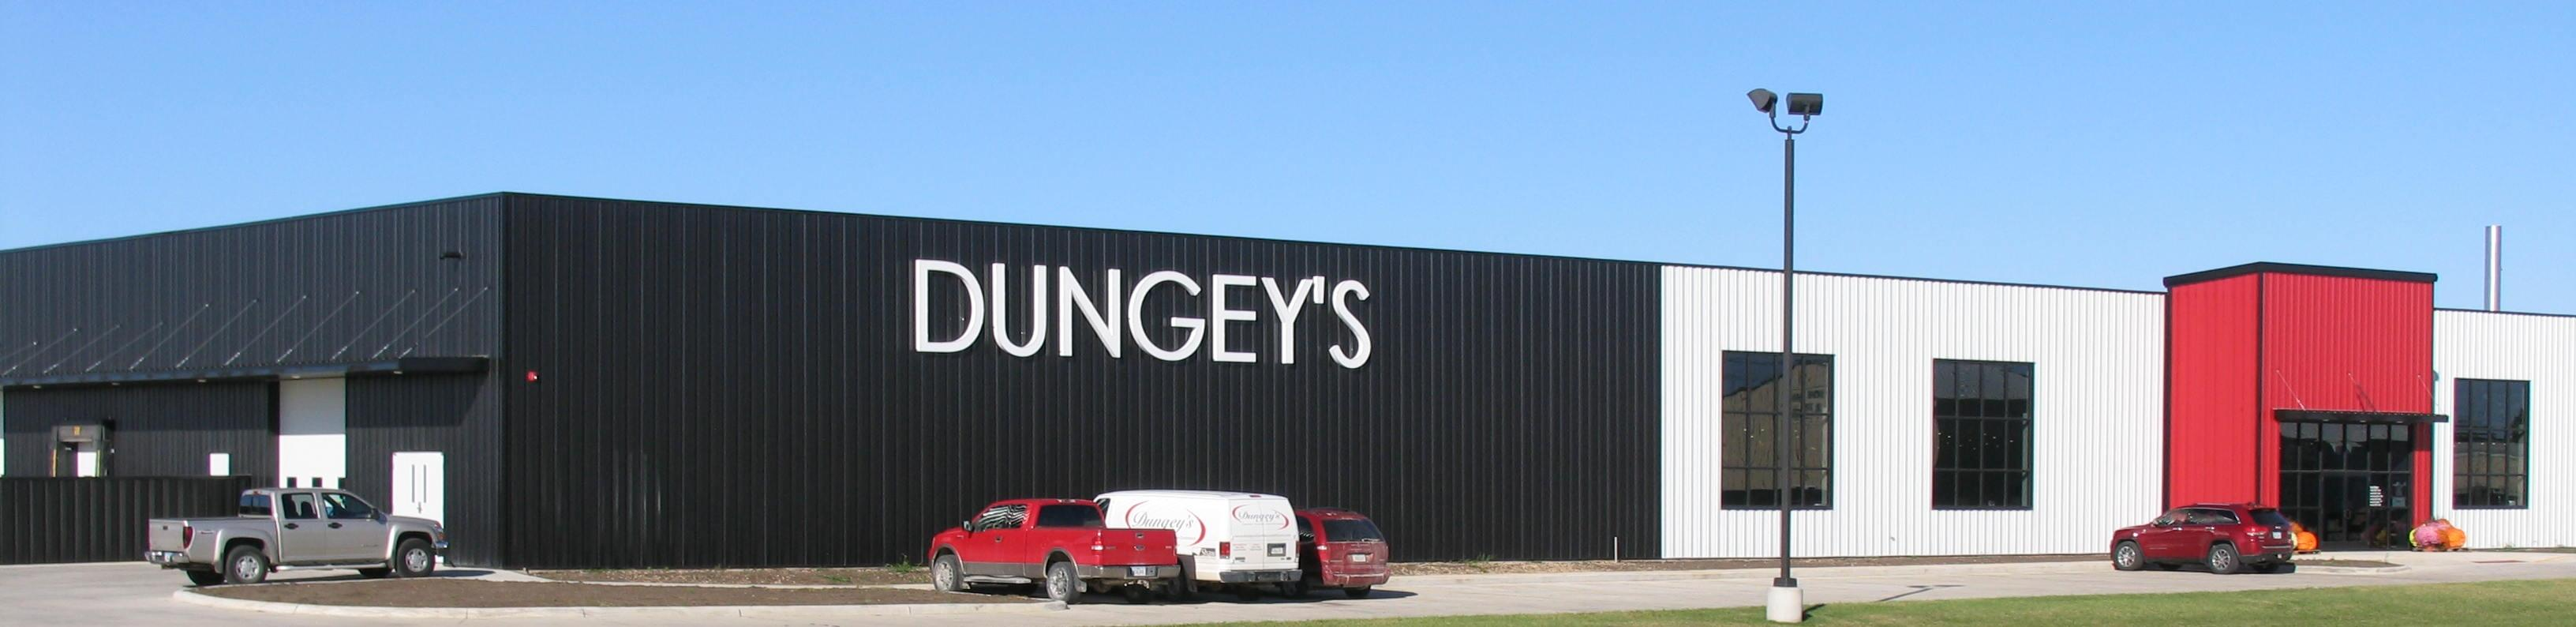 Dungeys Furniture New Hampton 3 Sold by HBS Inc